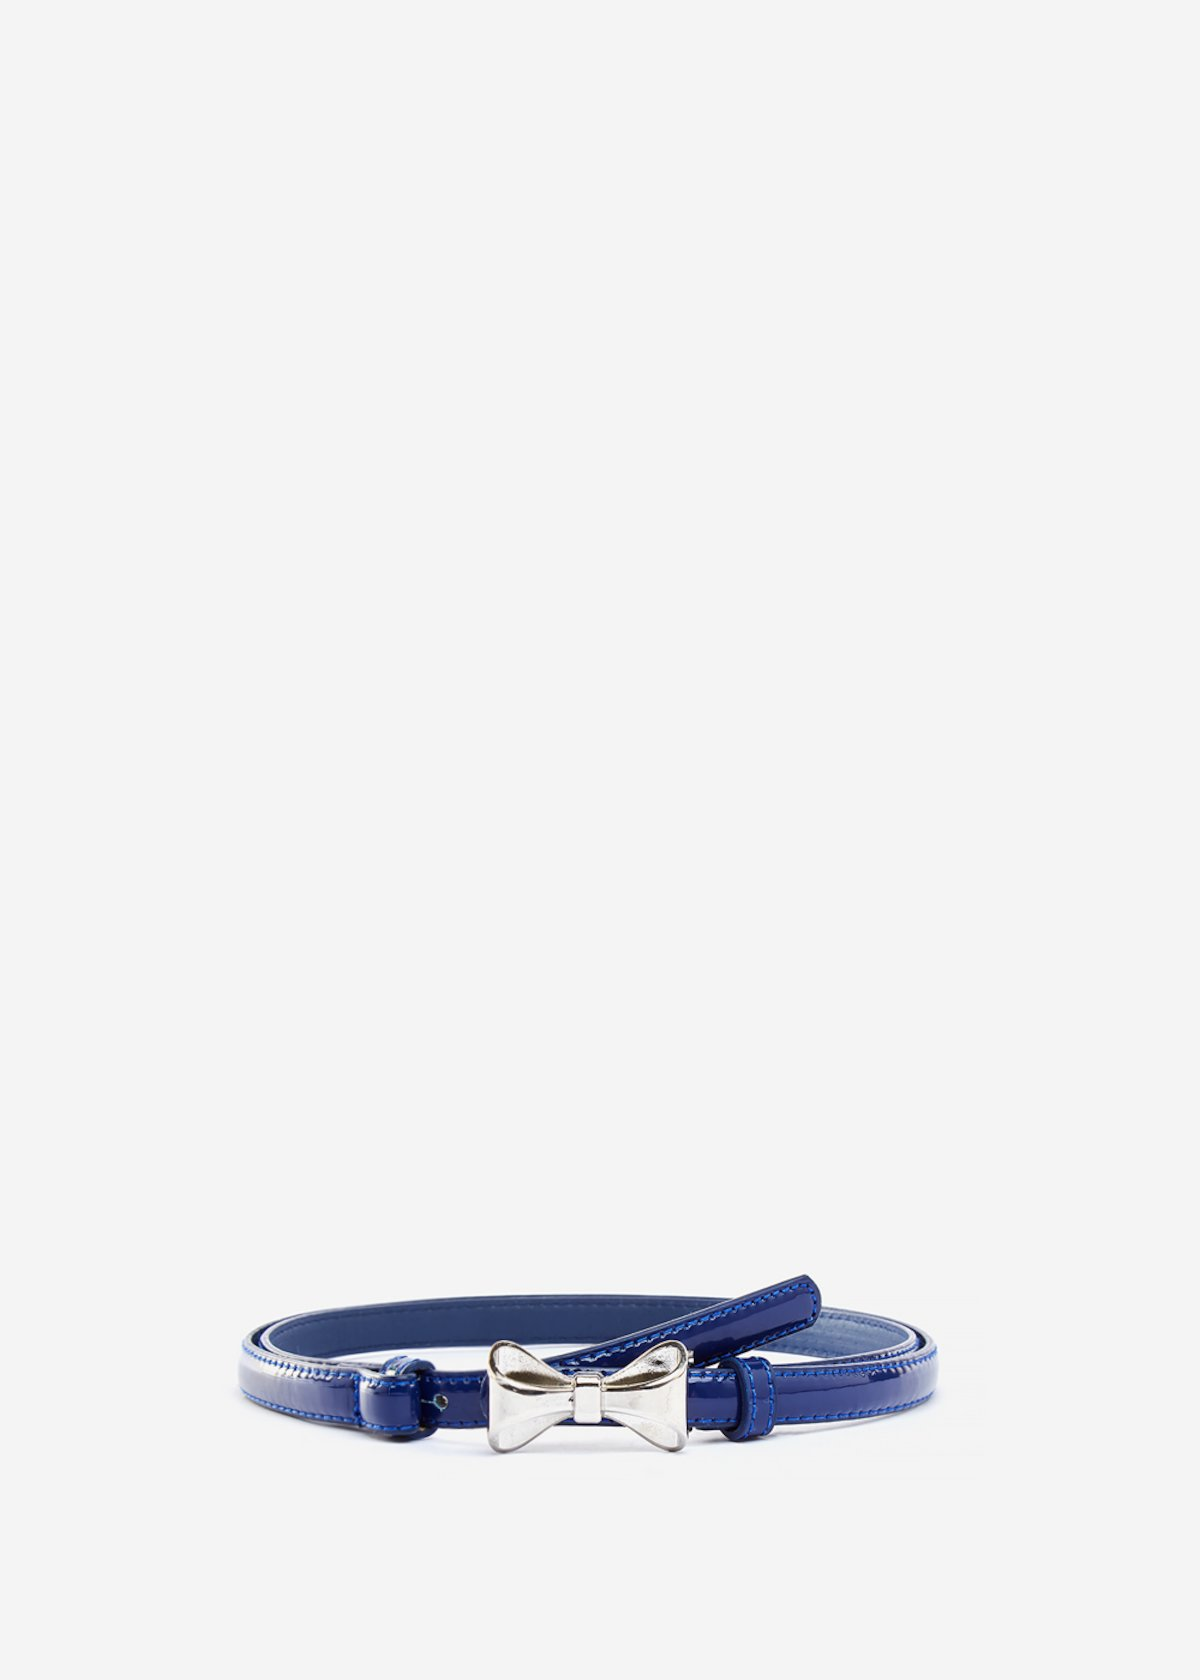 Faux leather Chicca belt with metal bow - Medium Blue